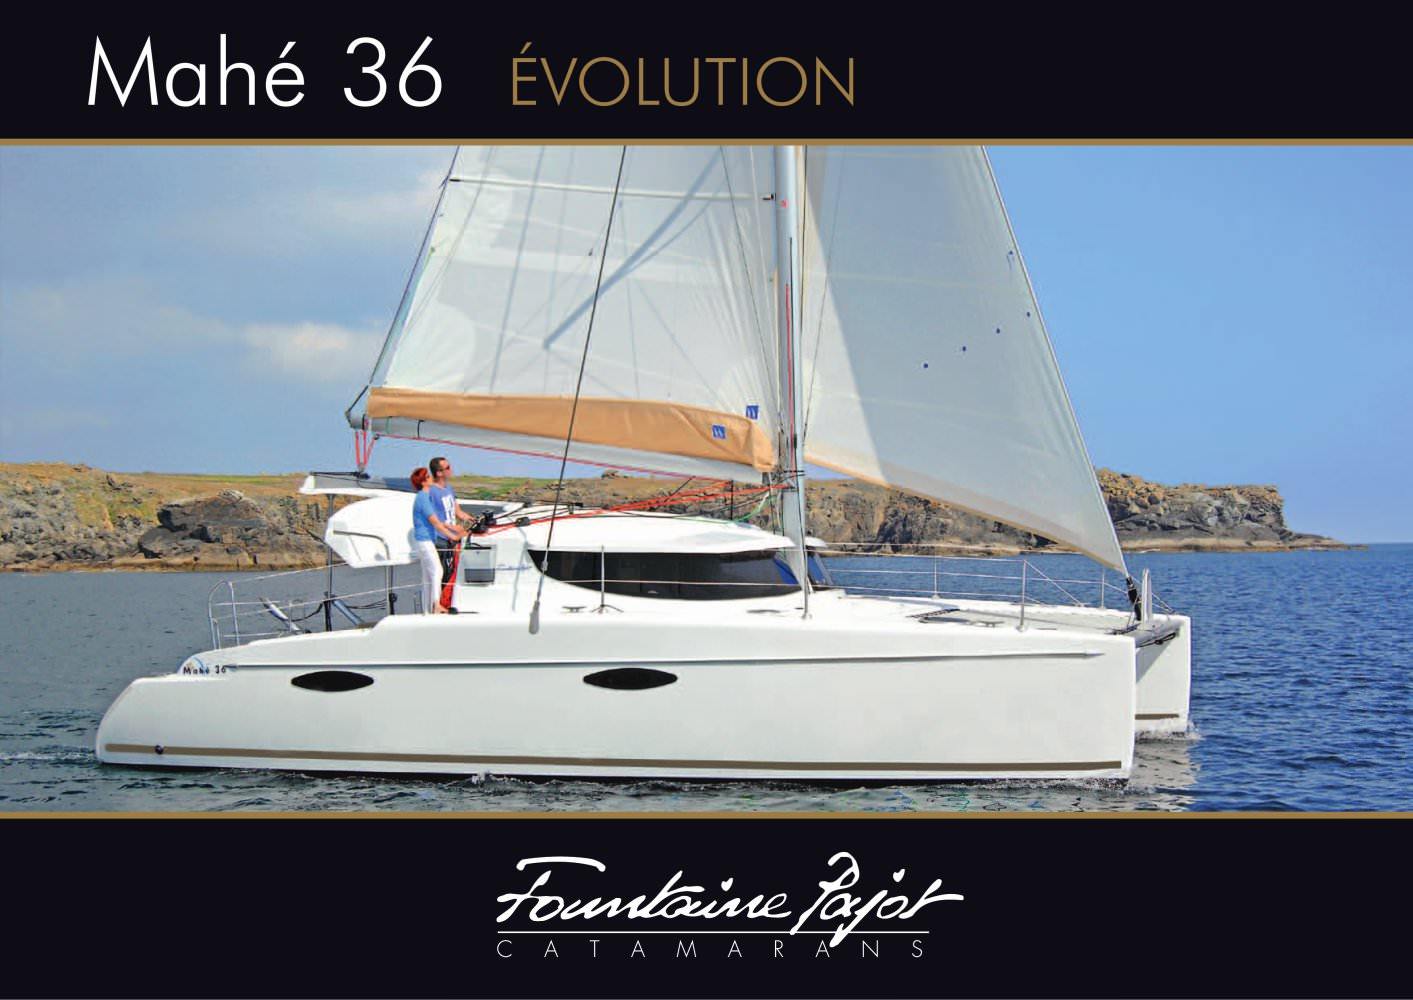 MAHE 36 EVOLUTION 2010 - Fountaine Pajot. See other catalogues for Fountaine ...